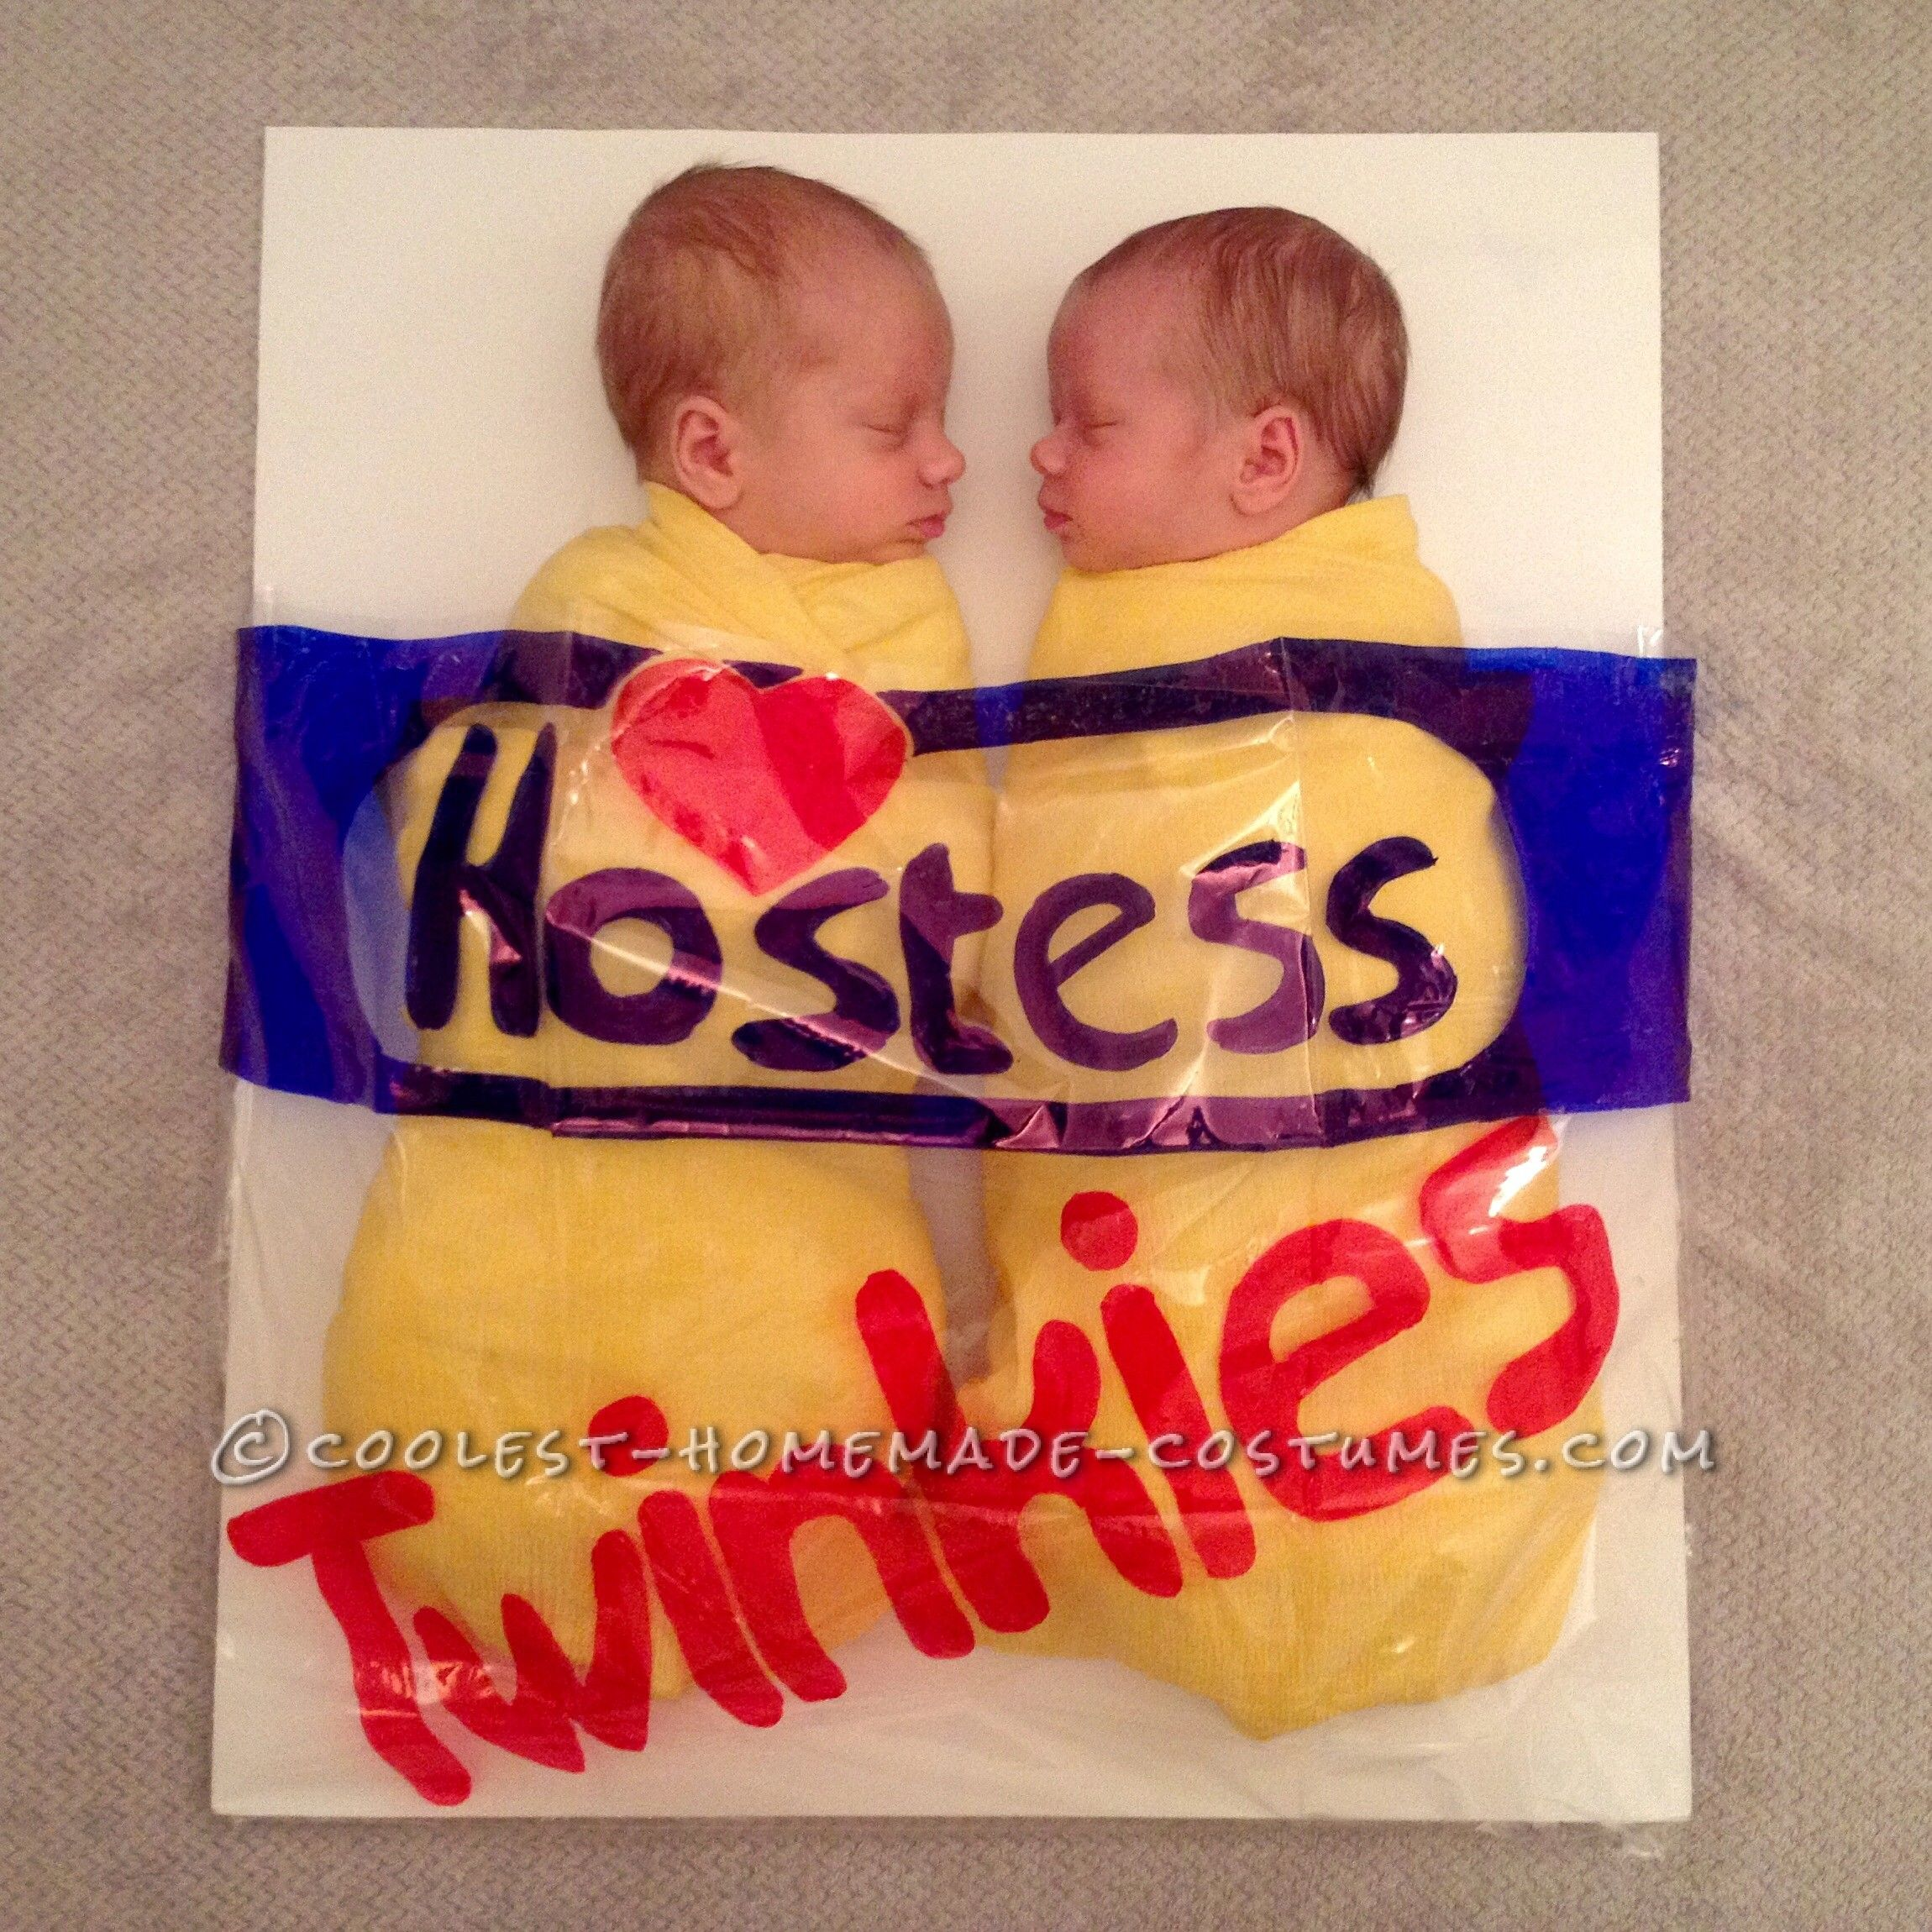 Awesome Twin Baby Costume Idea Happy Halloween from our TWINkies